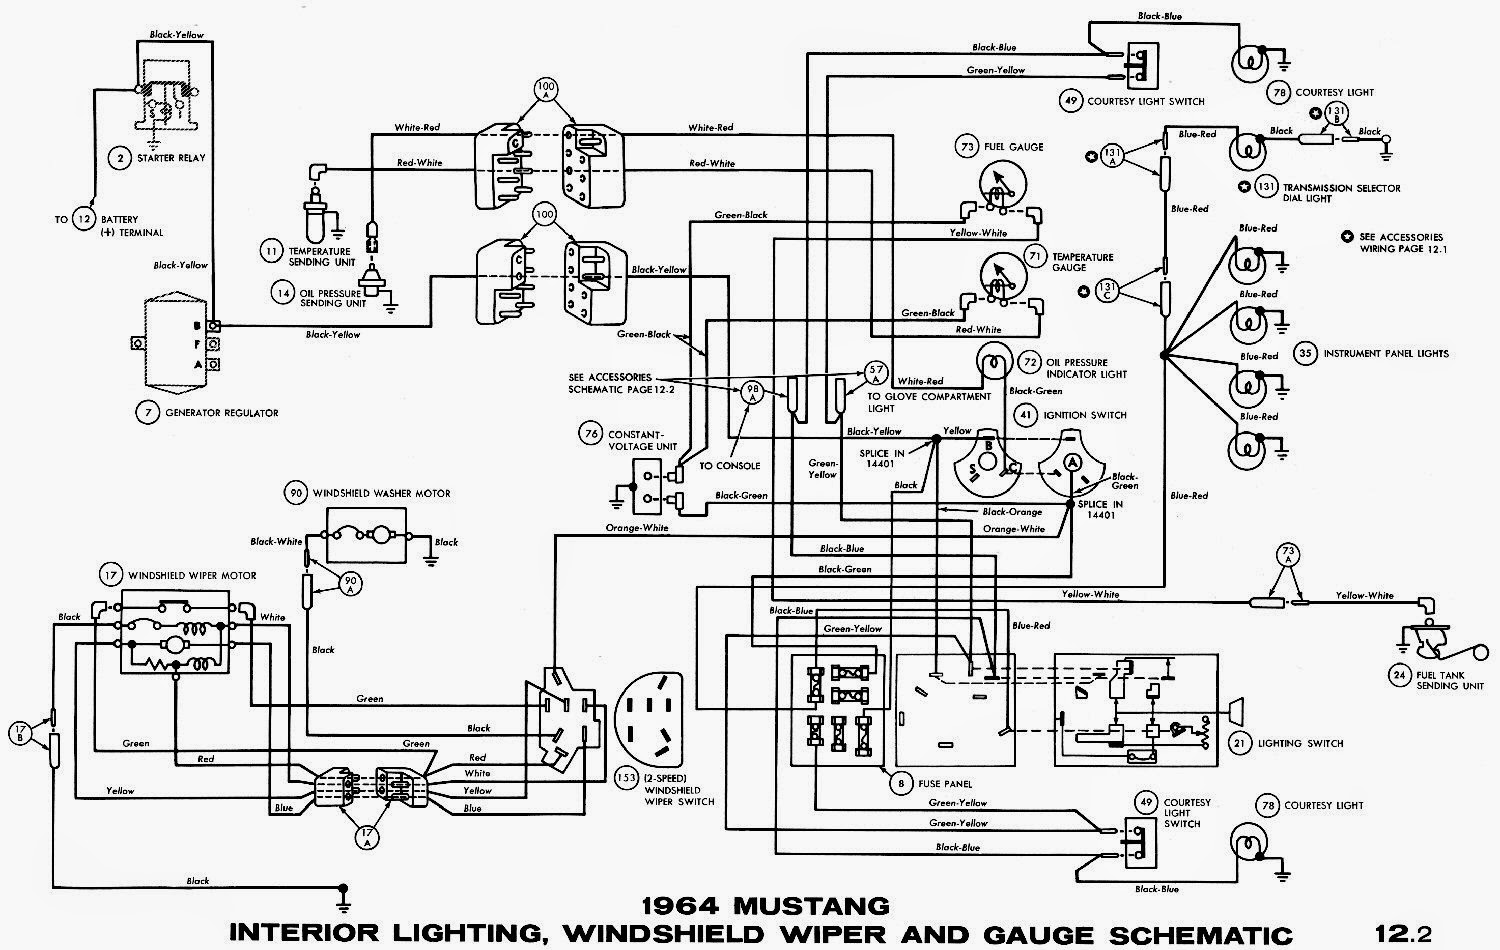 1989 Toyota 4runner Fuel Pump Wiring Diagram moreover 2001 Ford F150 Ignition Wiring Diagram together with Jeep Cherokee 1984 1996 Why Is My Radiator Fan Not Working 399036 moreover Lexus Es300 Fuse Diagram additionally 2015 03 01 archive. on 1989 jeep cherokee ignition switch wiring diagram